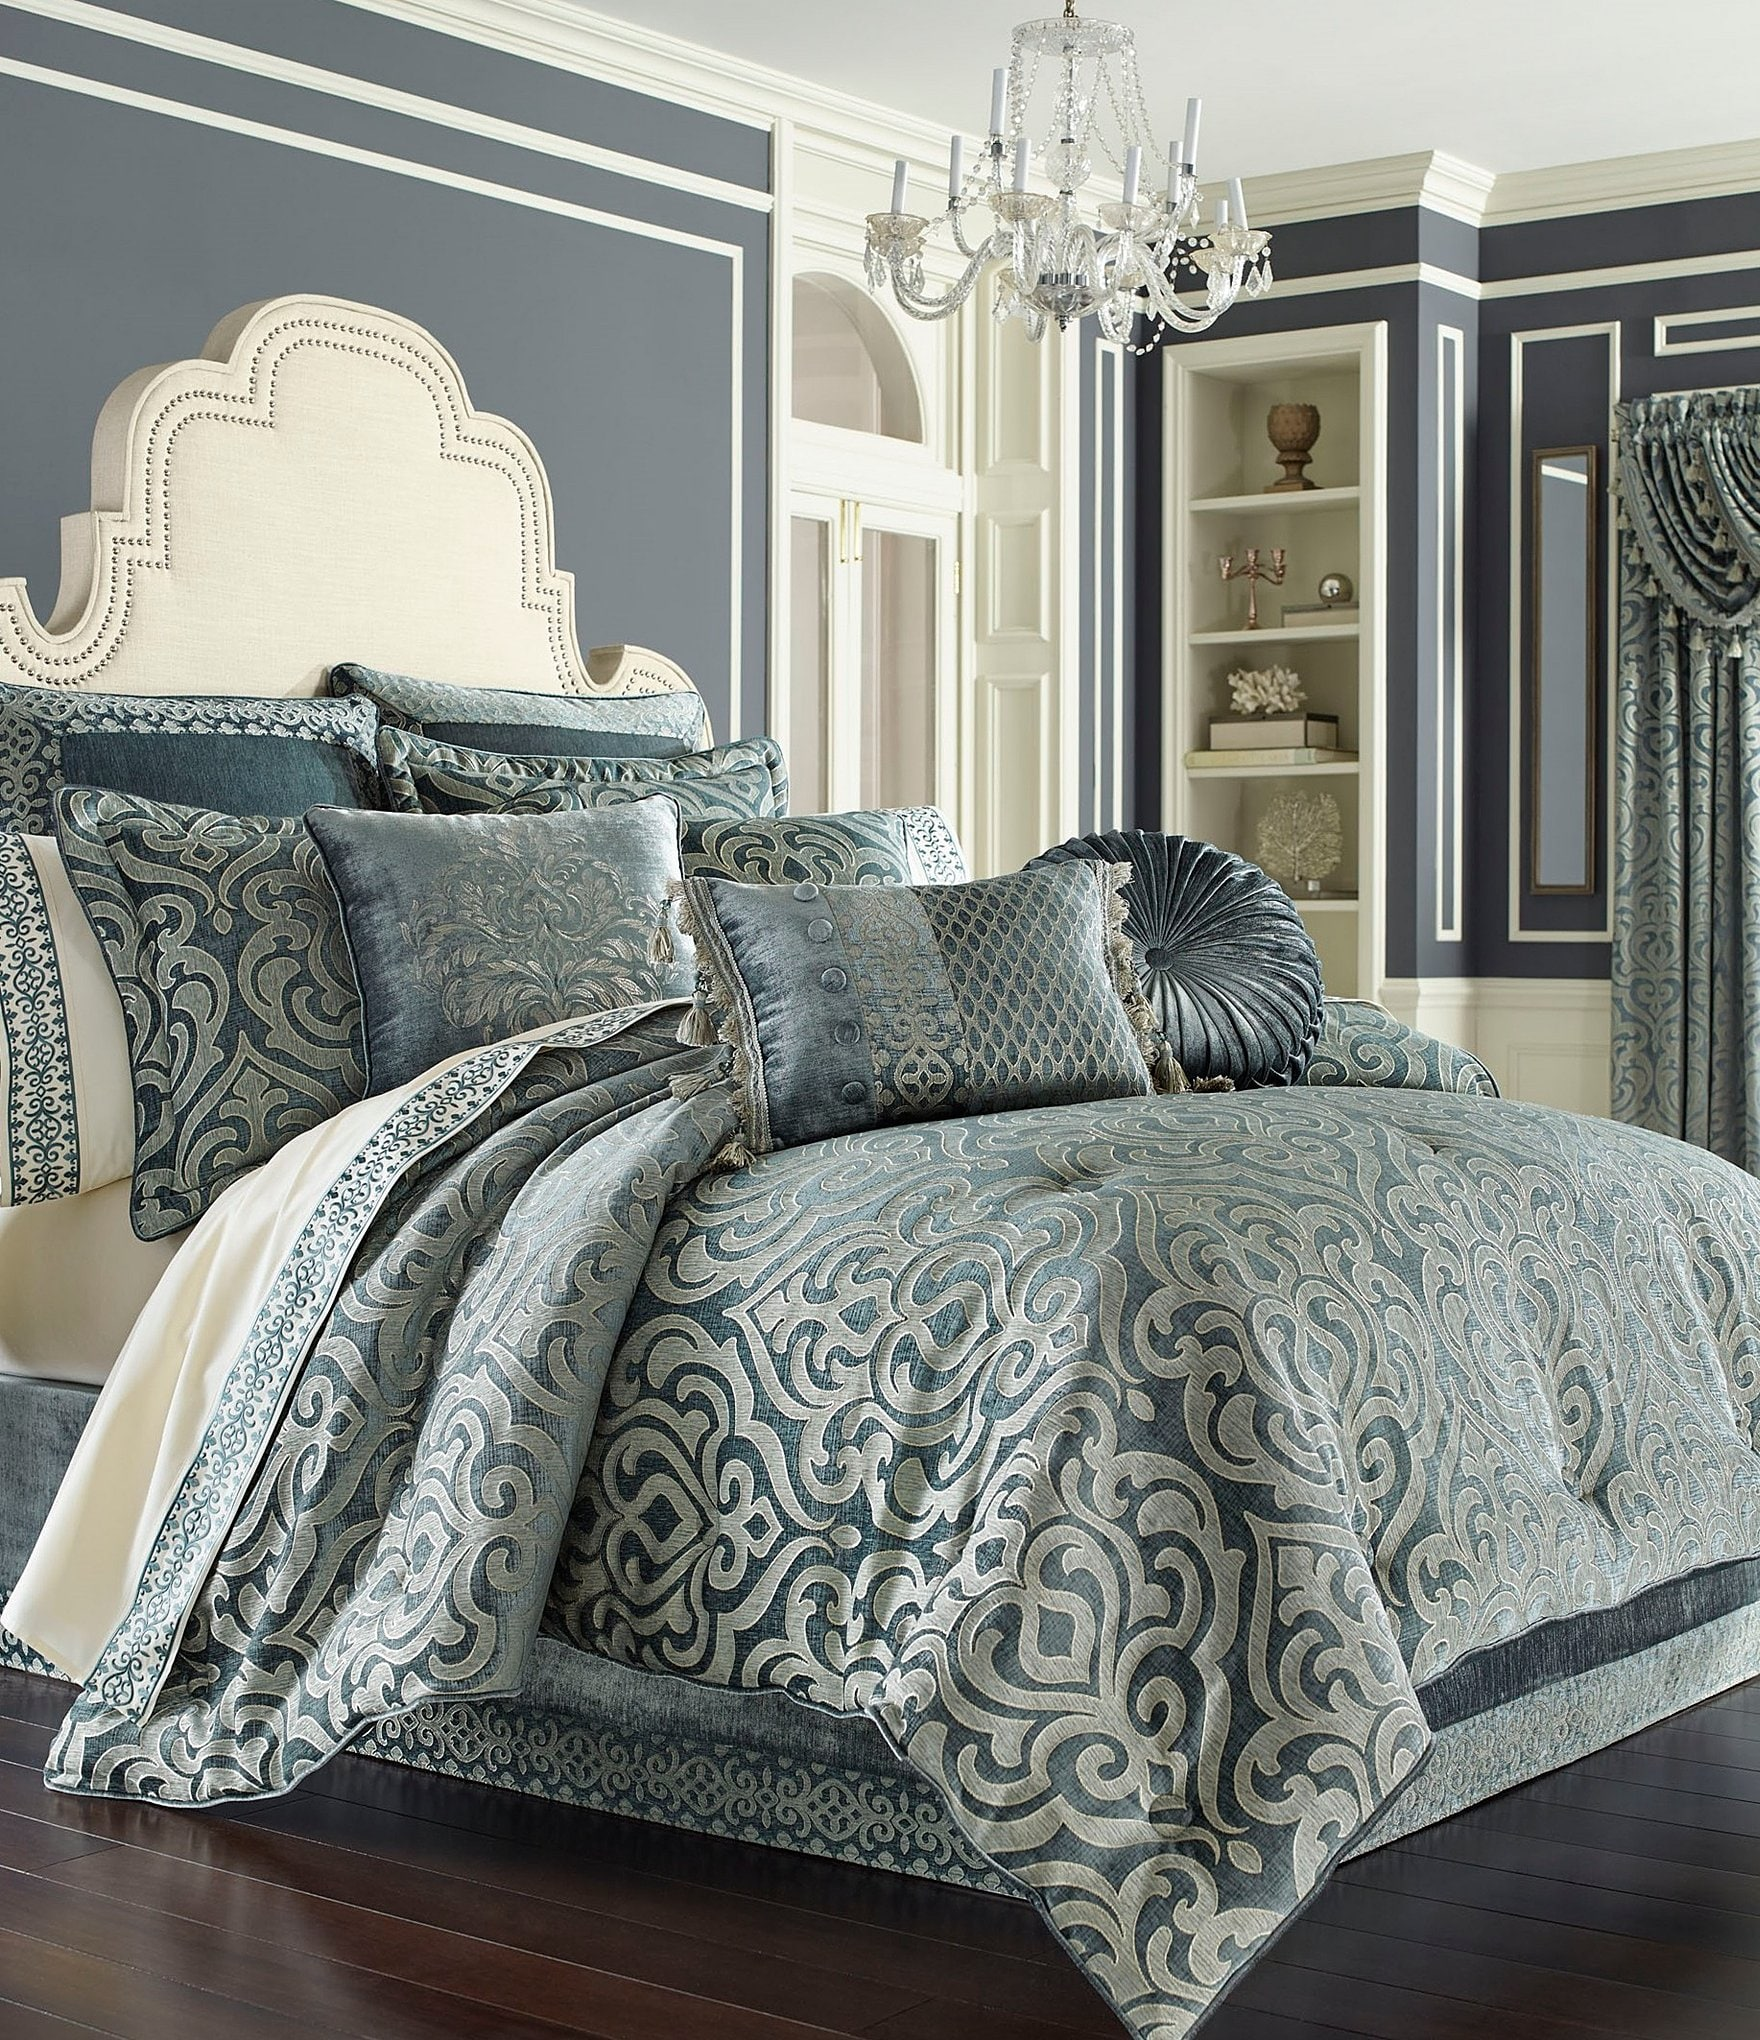 aqua jill capristripe rosenwald bedding jillrosenwald products seaside capri seasideaqua beddingensemble bed comforter stripe set teal